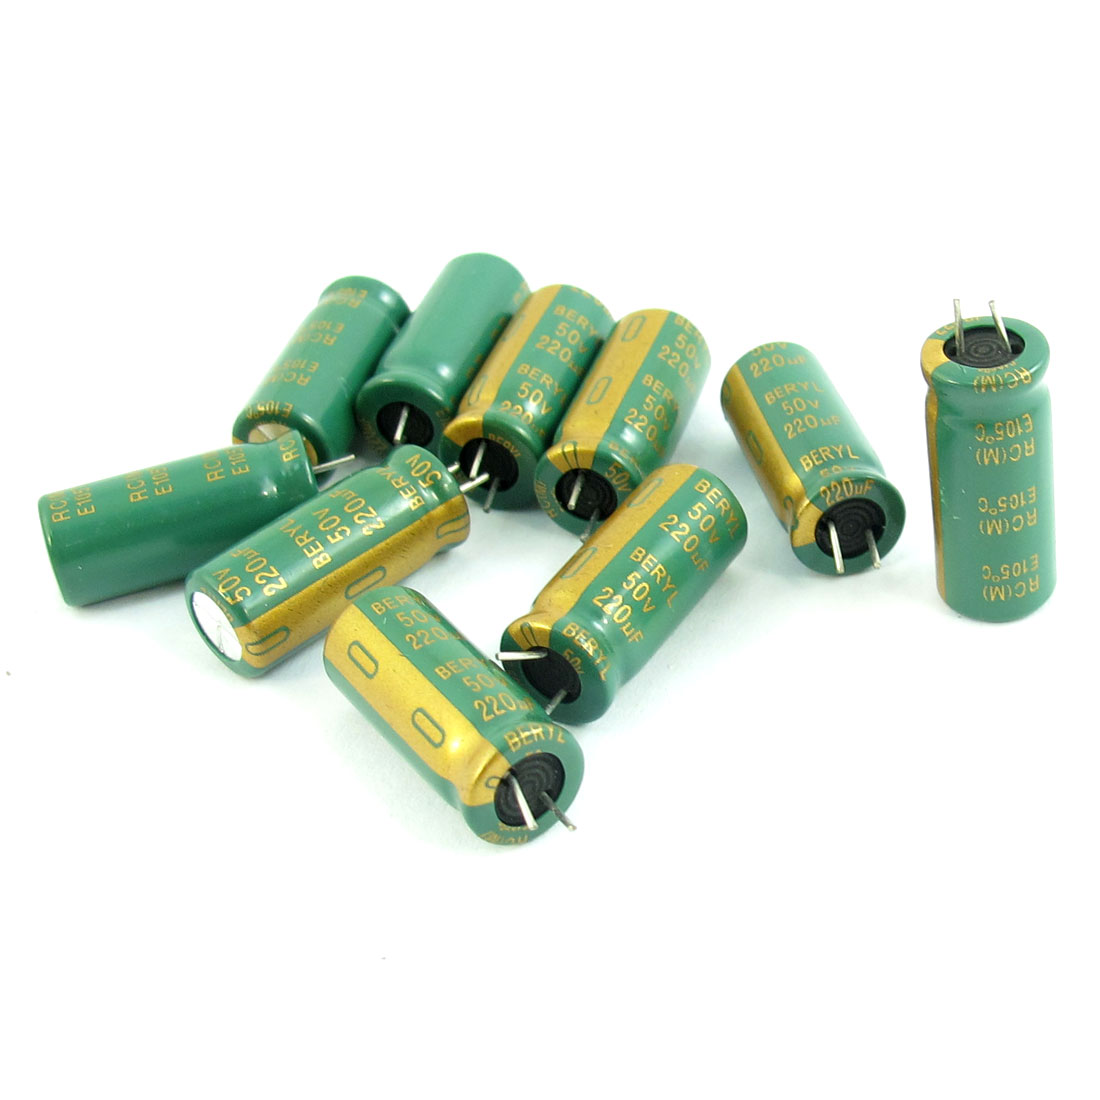 10pcs Electronic Component 220uF 50V 105C Electrolytic Capacitor 8x19mm